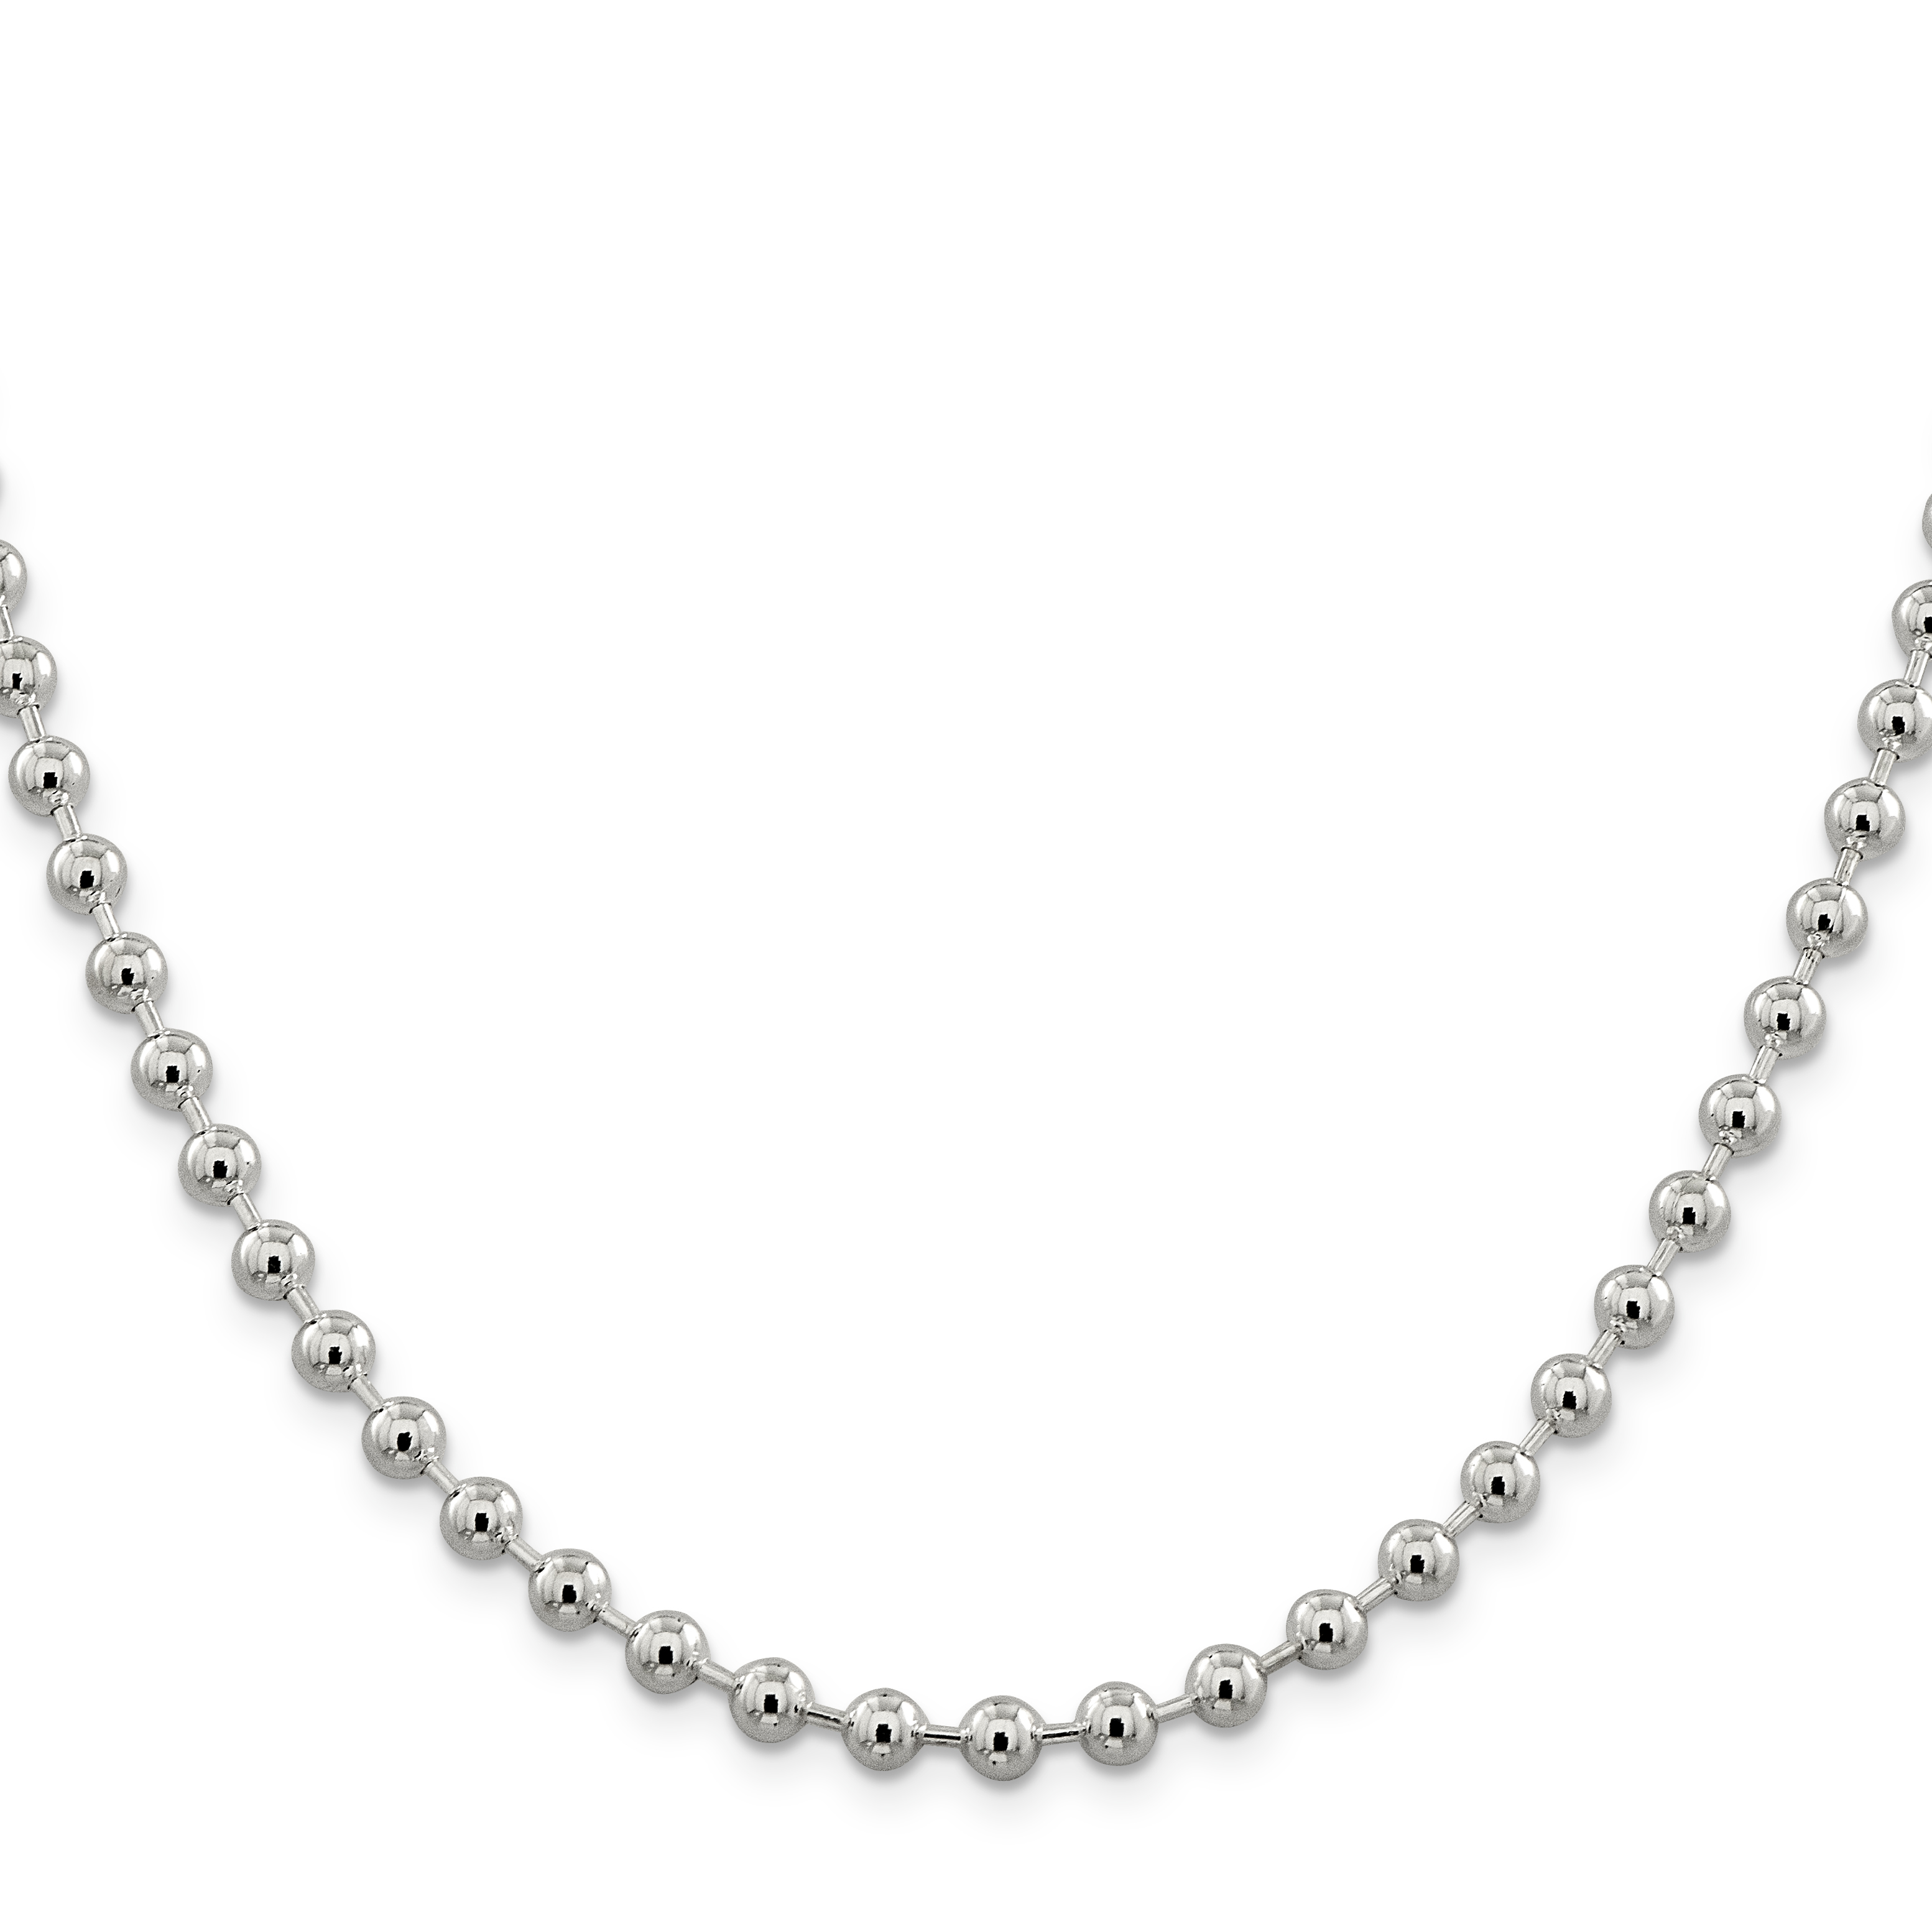 925 Sterling Silver 5mm Beaded Chain 20 Inch - image 5 of 5